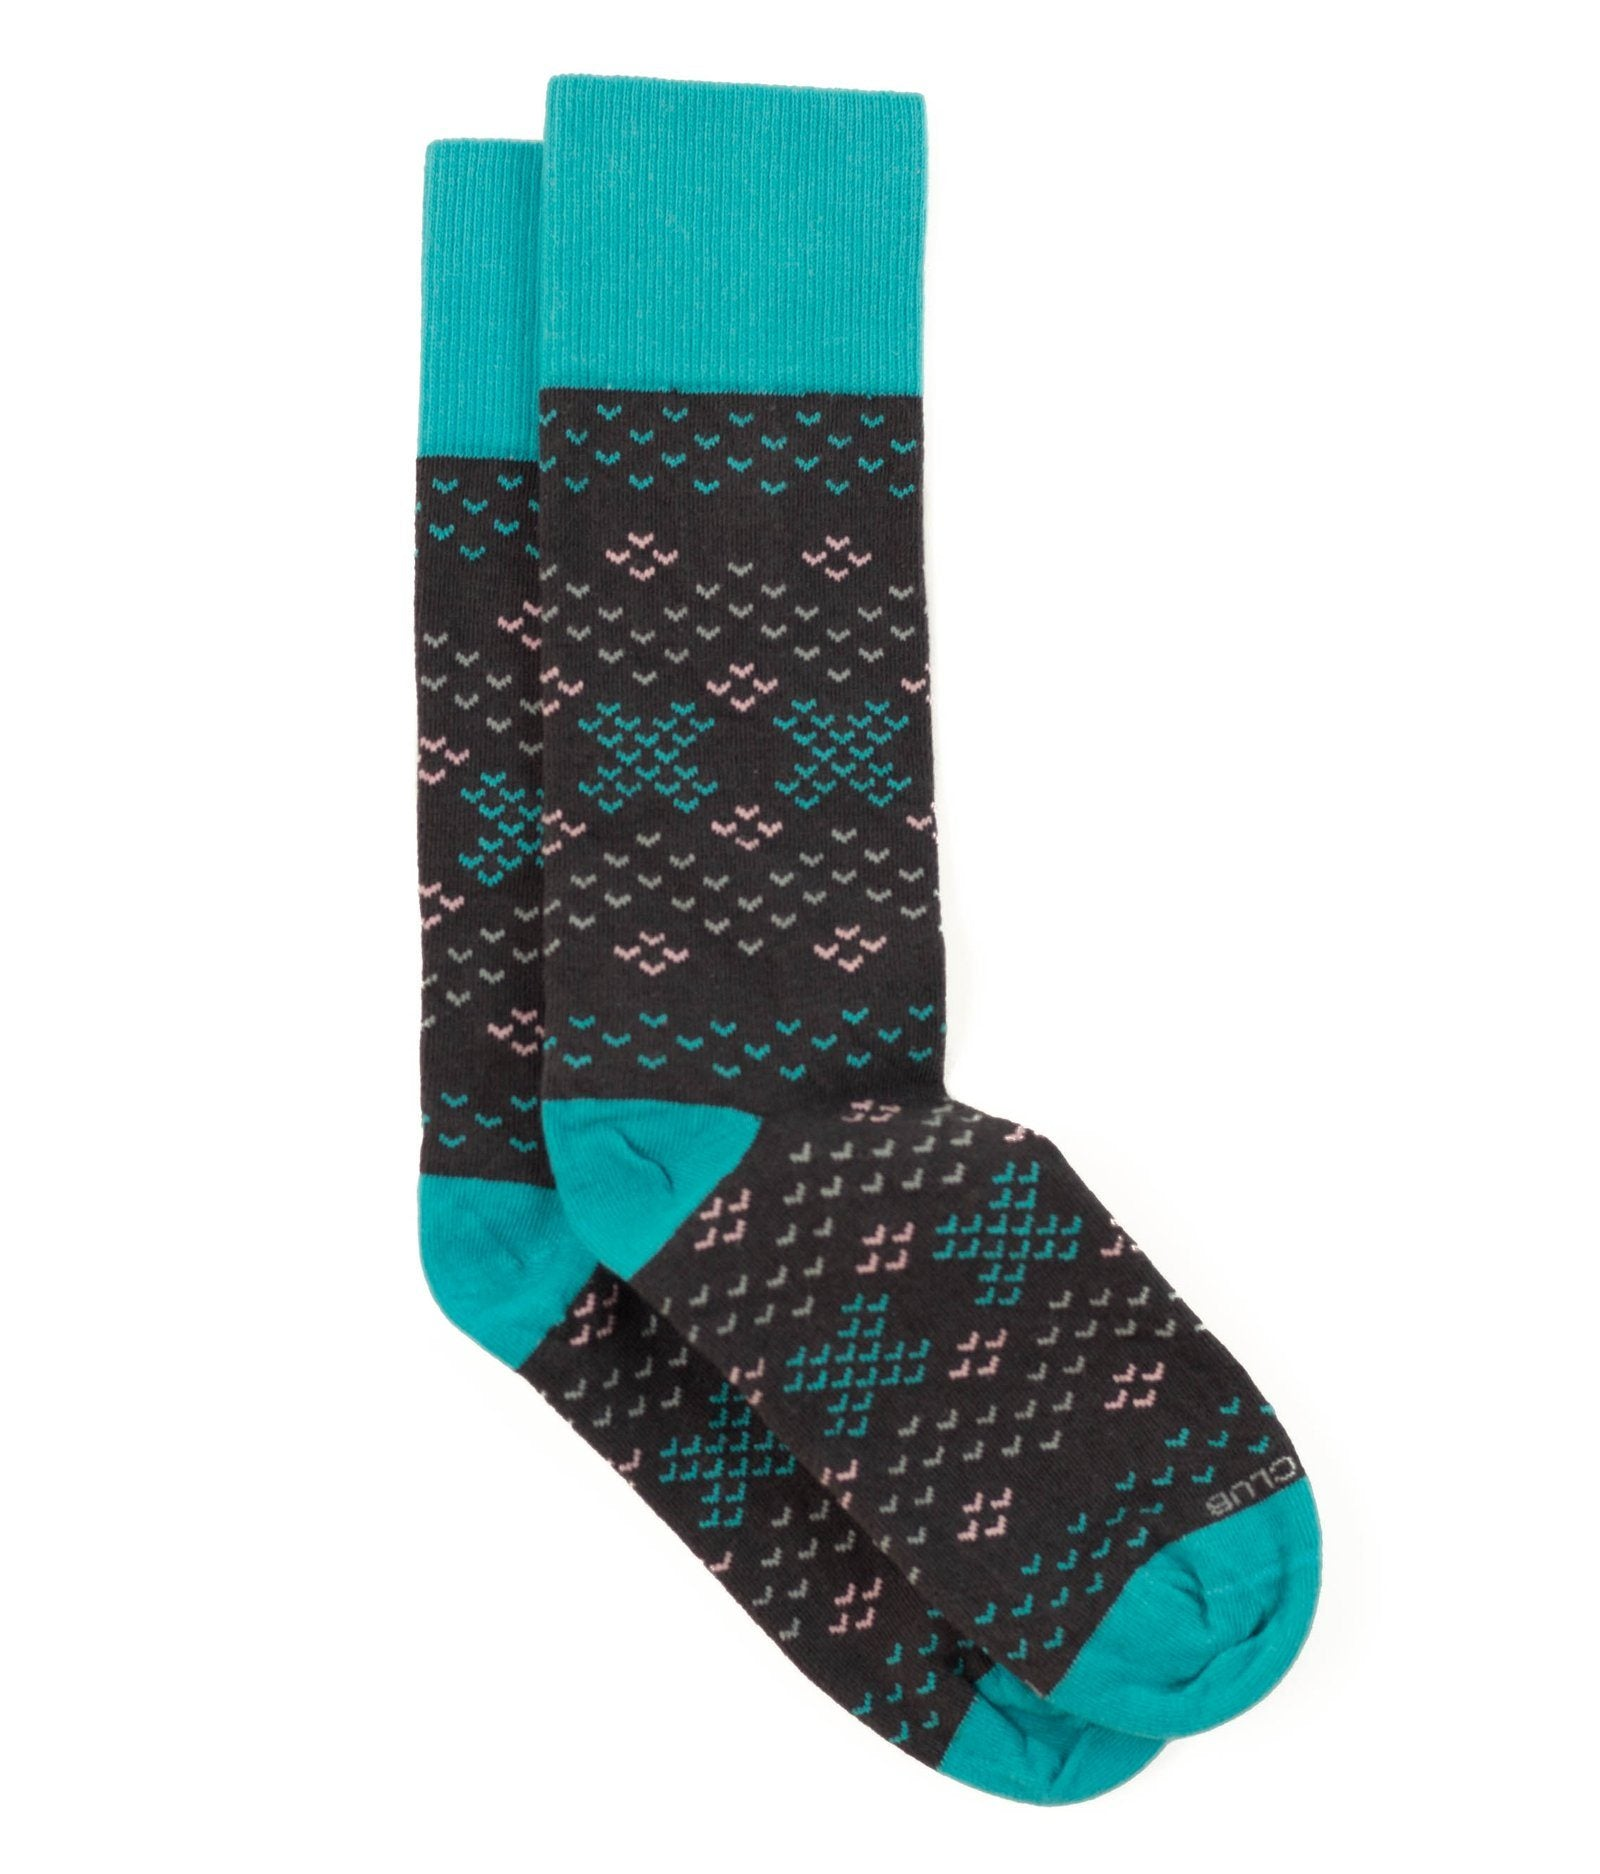 The Amelia - Onyx - Sock Club Store